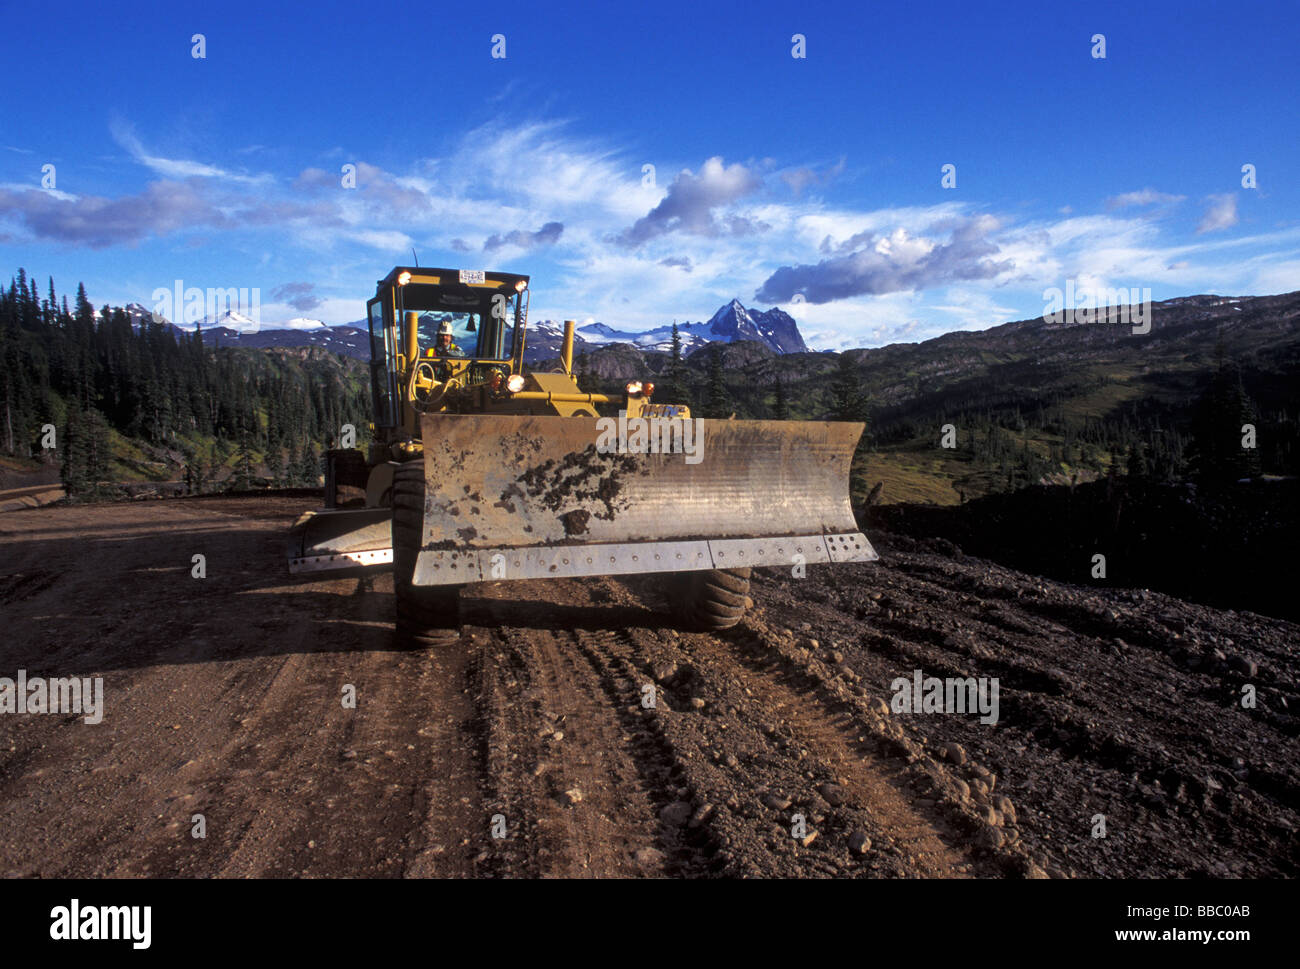 Motor Grader working on new mine road, BC, Canada. - Stock Image